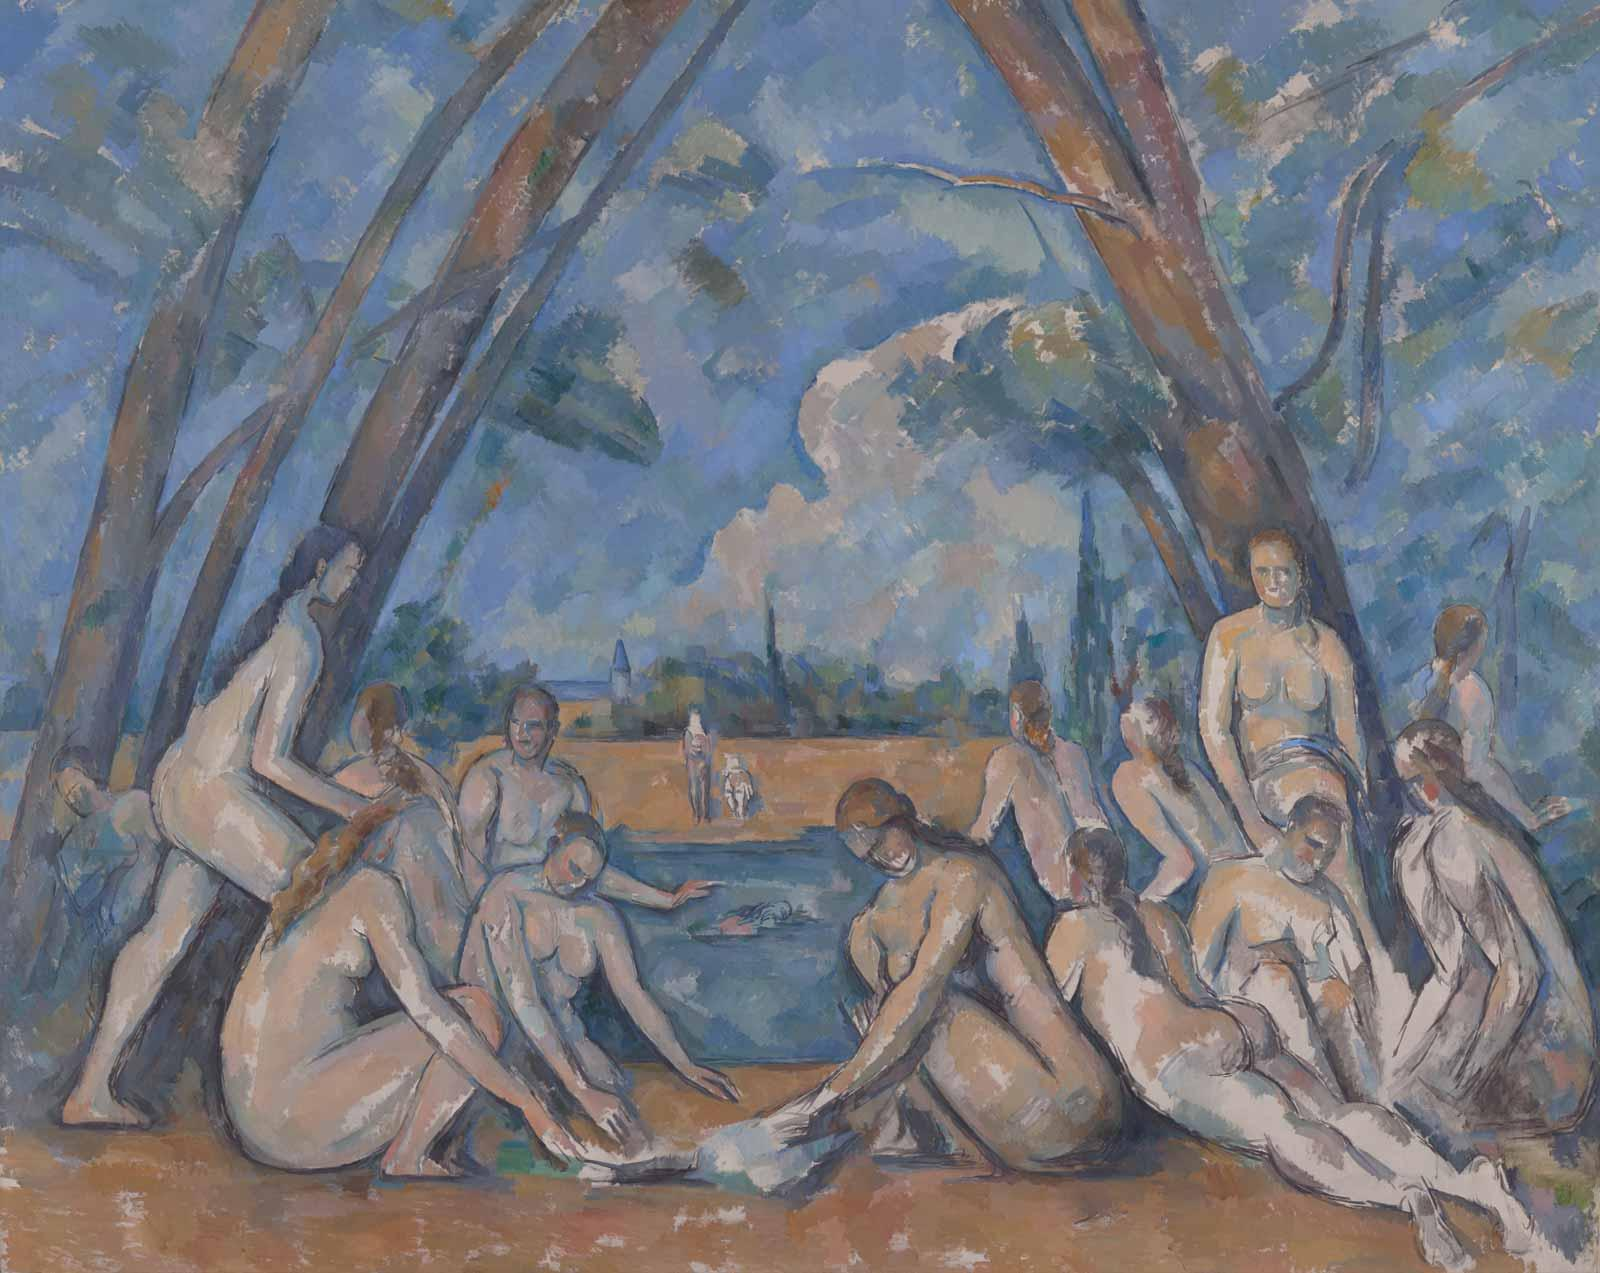 The Large Bathers, 1900-1906, by Paul Cézanne.